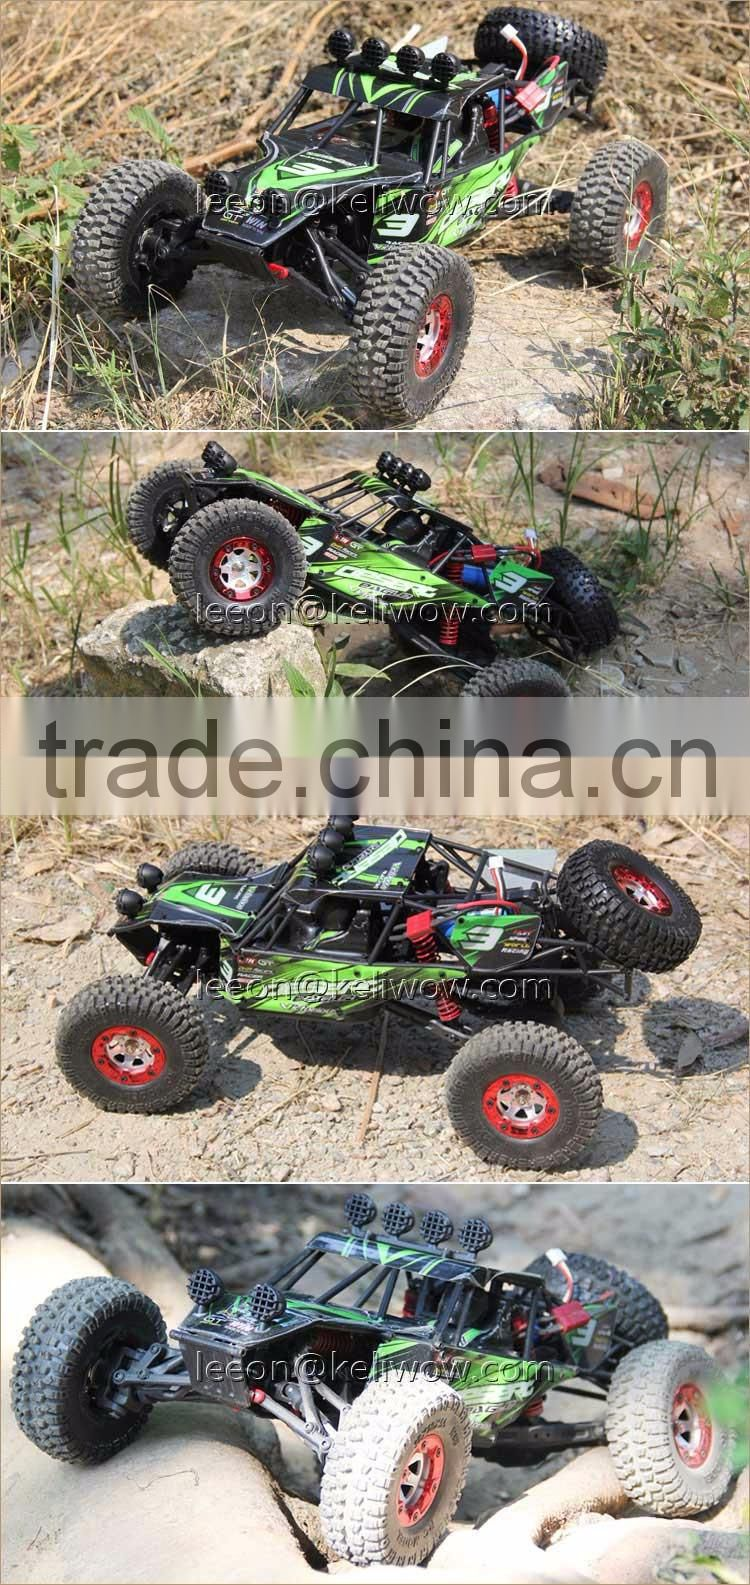 4WD 2.4G Electric Powerful Remote Control Car Brushed/ Brushless High Speed RC Monster Truck With 40-75km/h